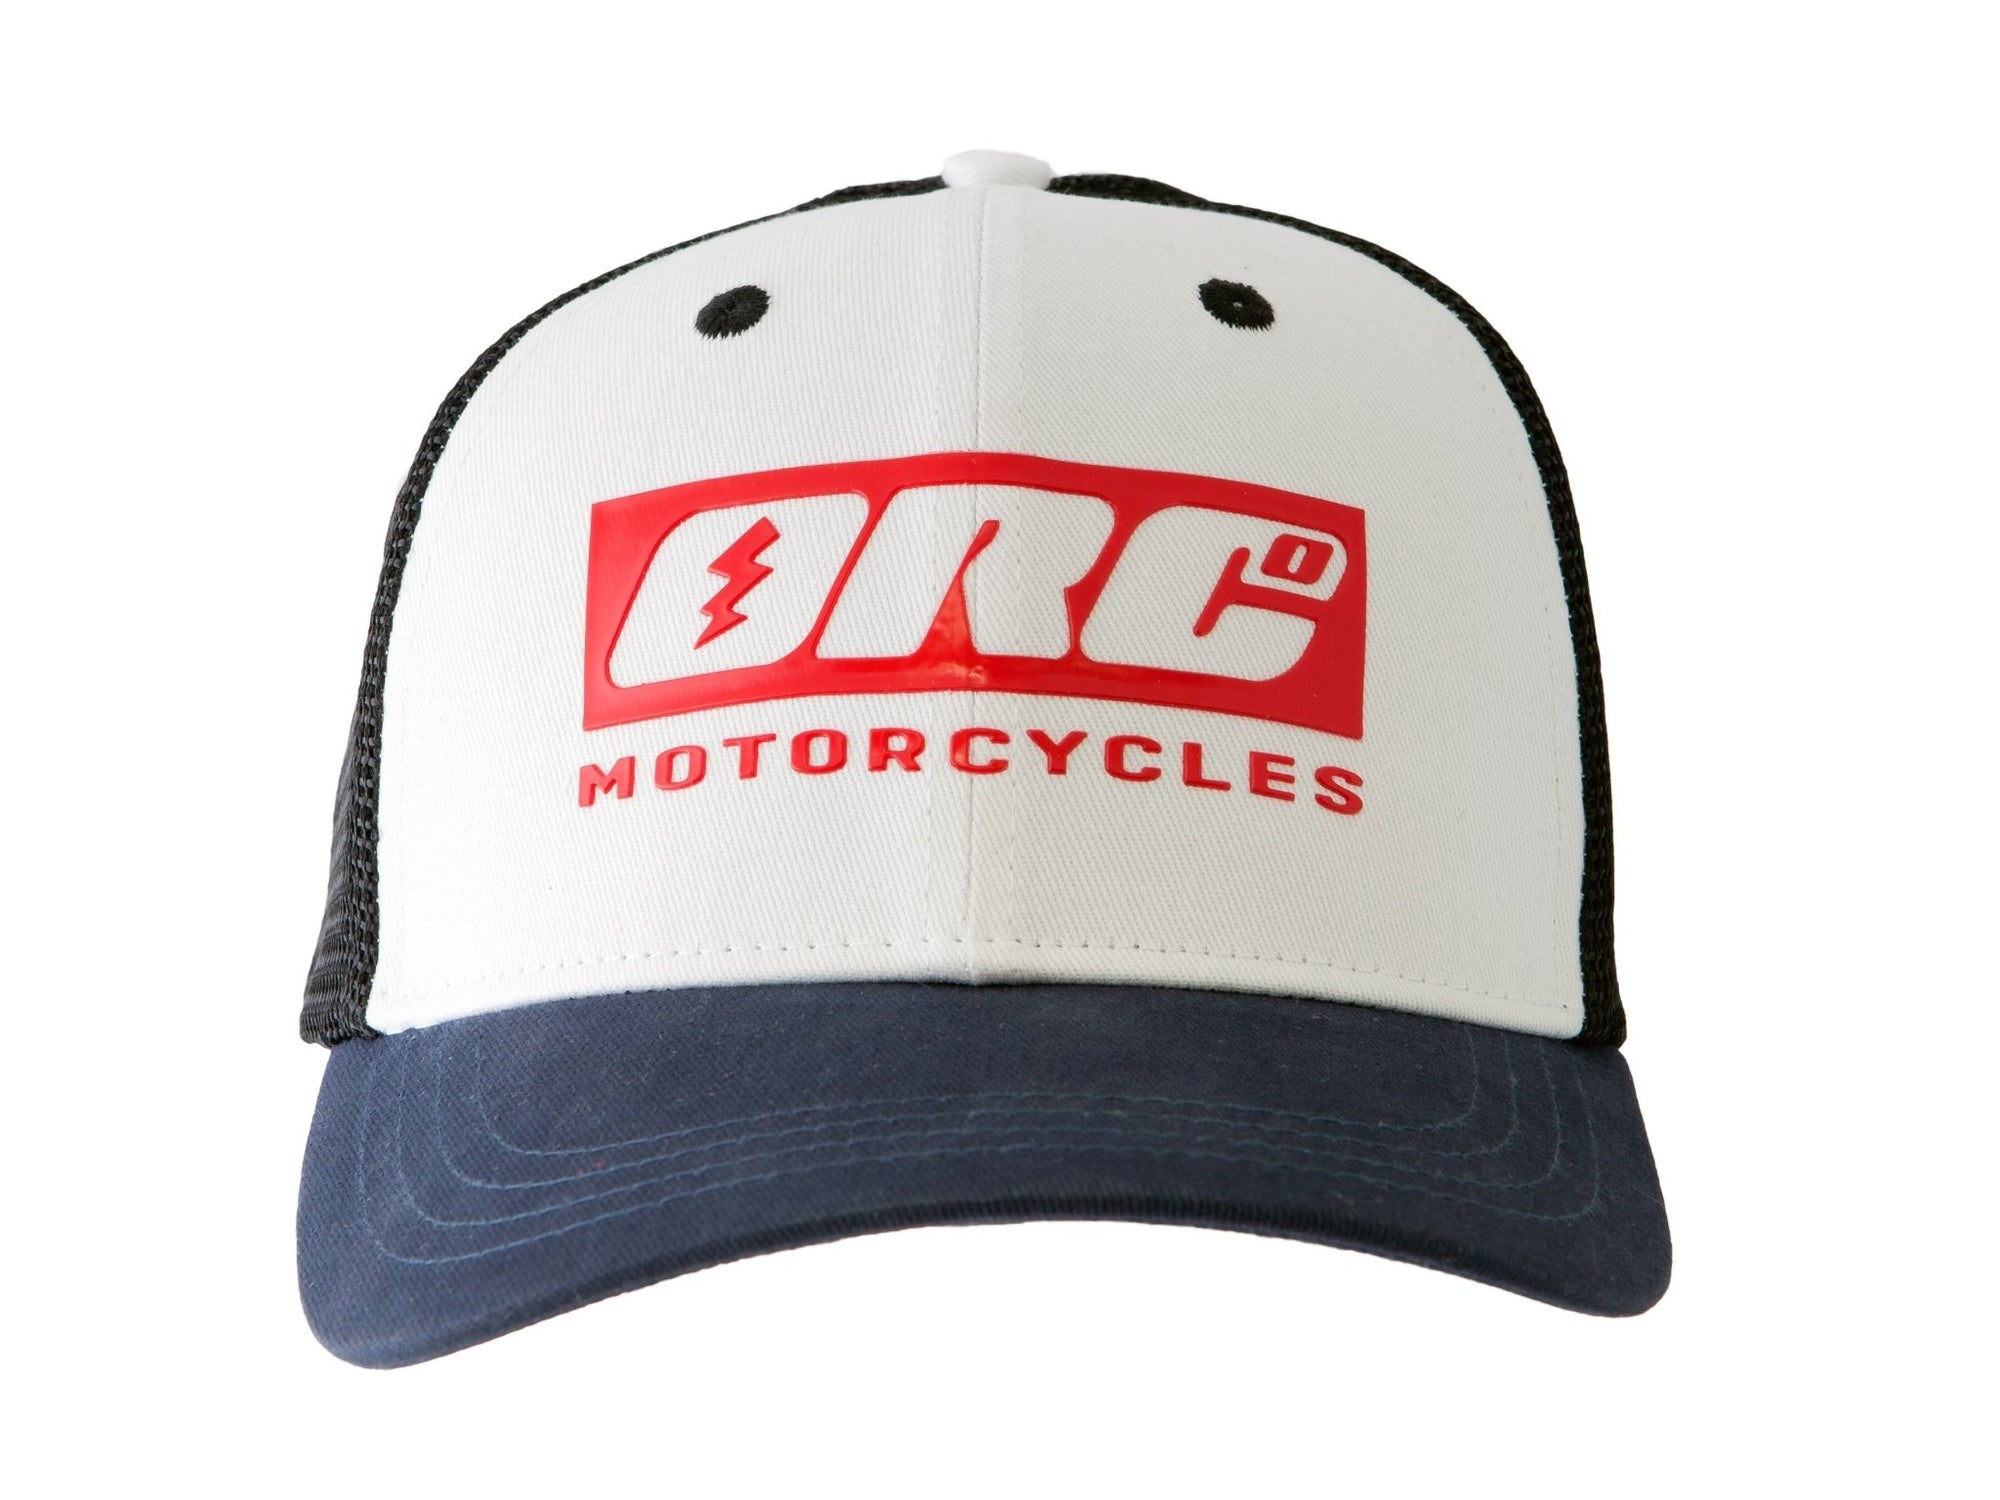 Oily Rag Clothing - Oily Rag Clothing ORC Motorräder Trucker-Cap - Caps - Salt Flats Clothing